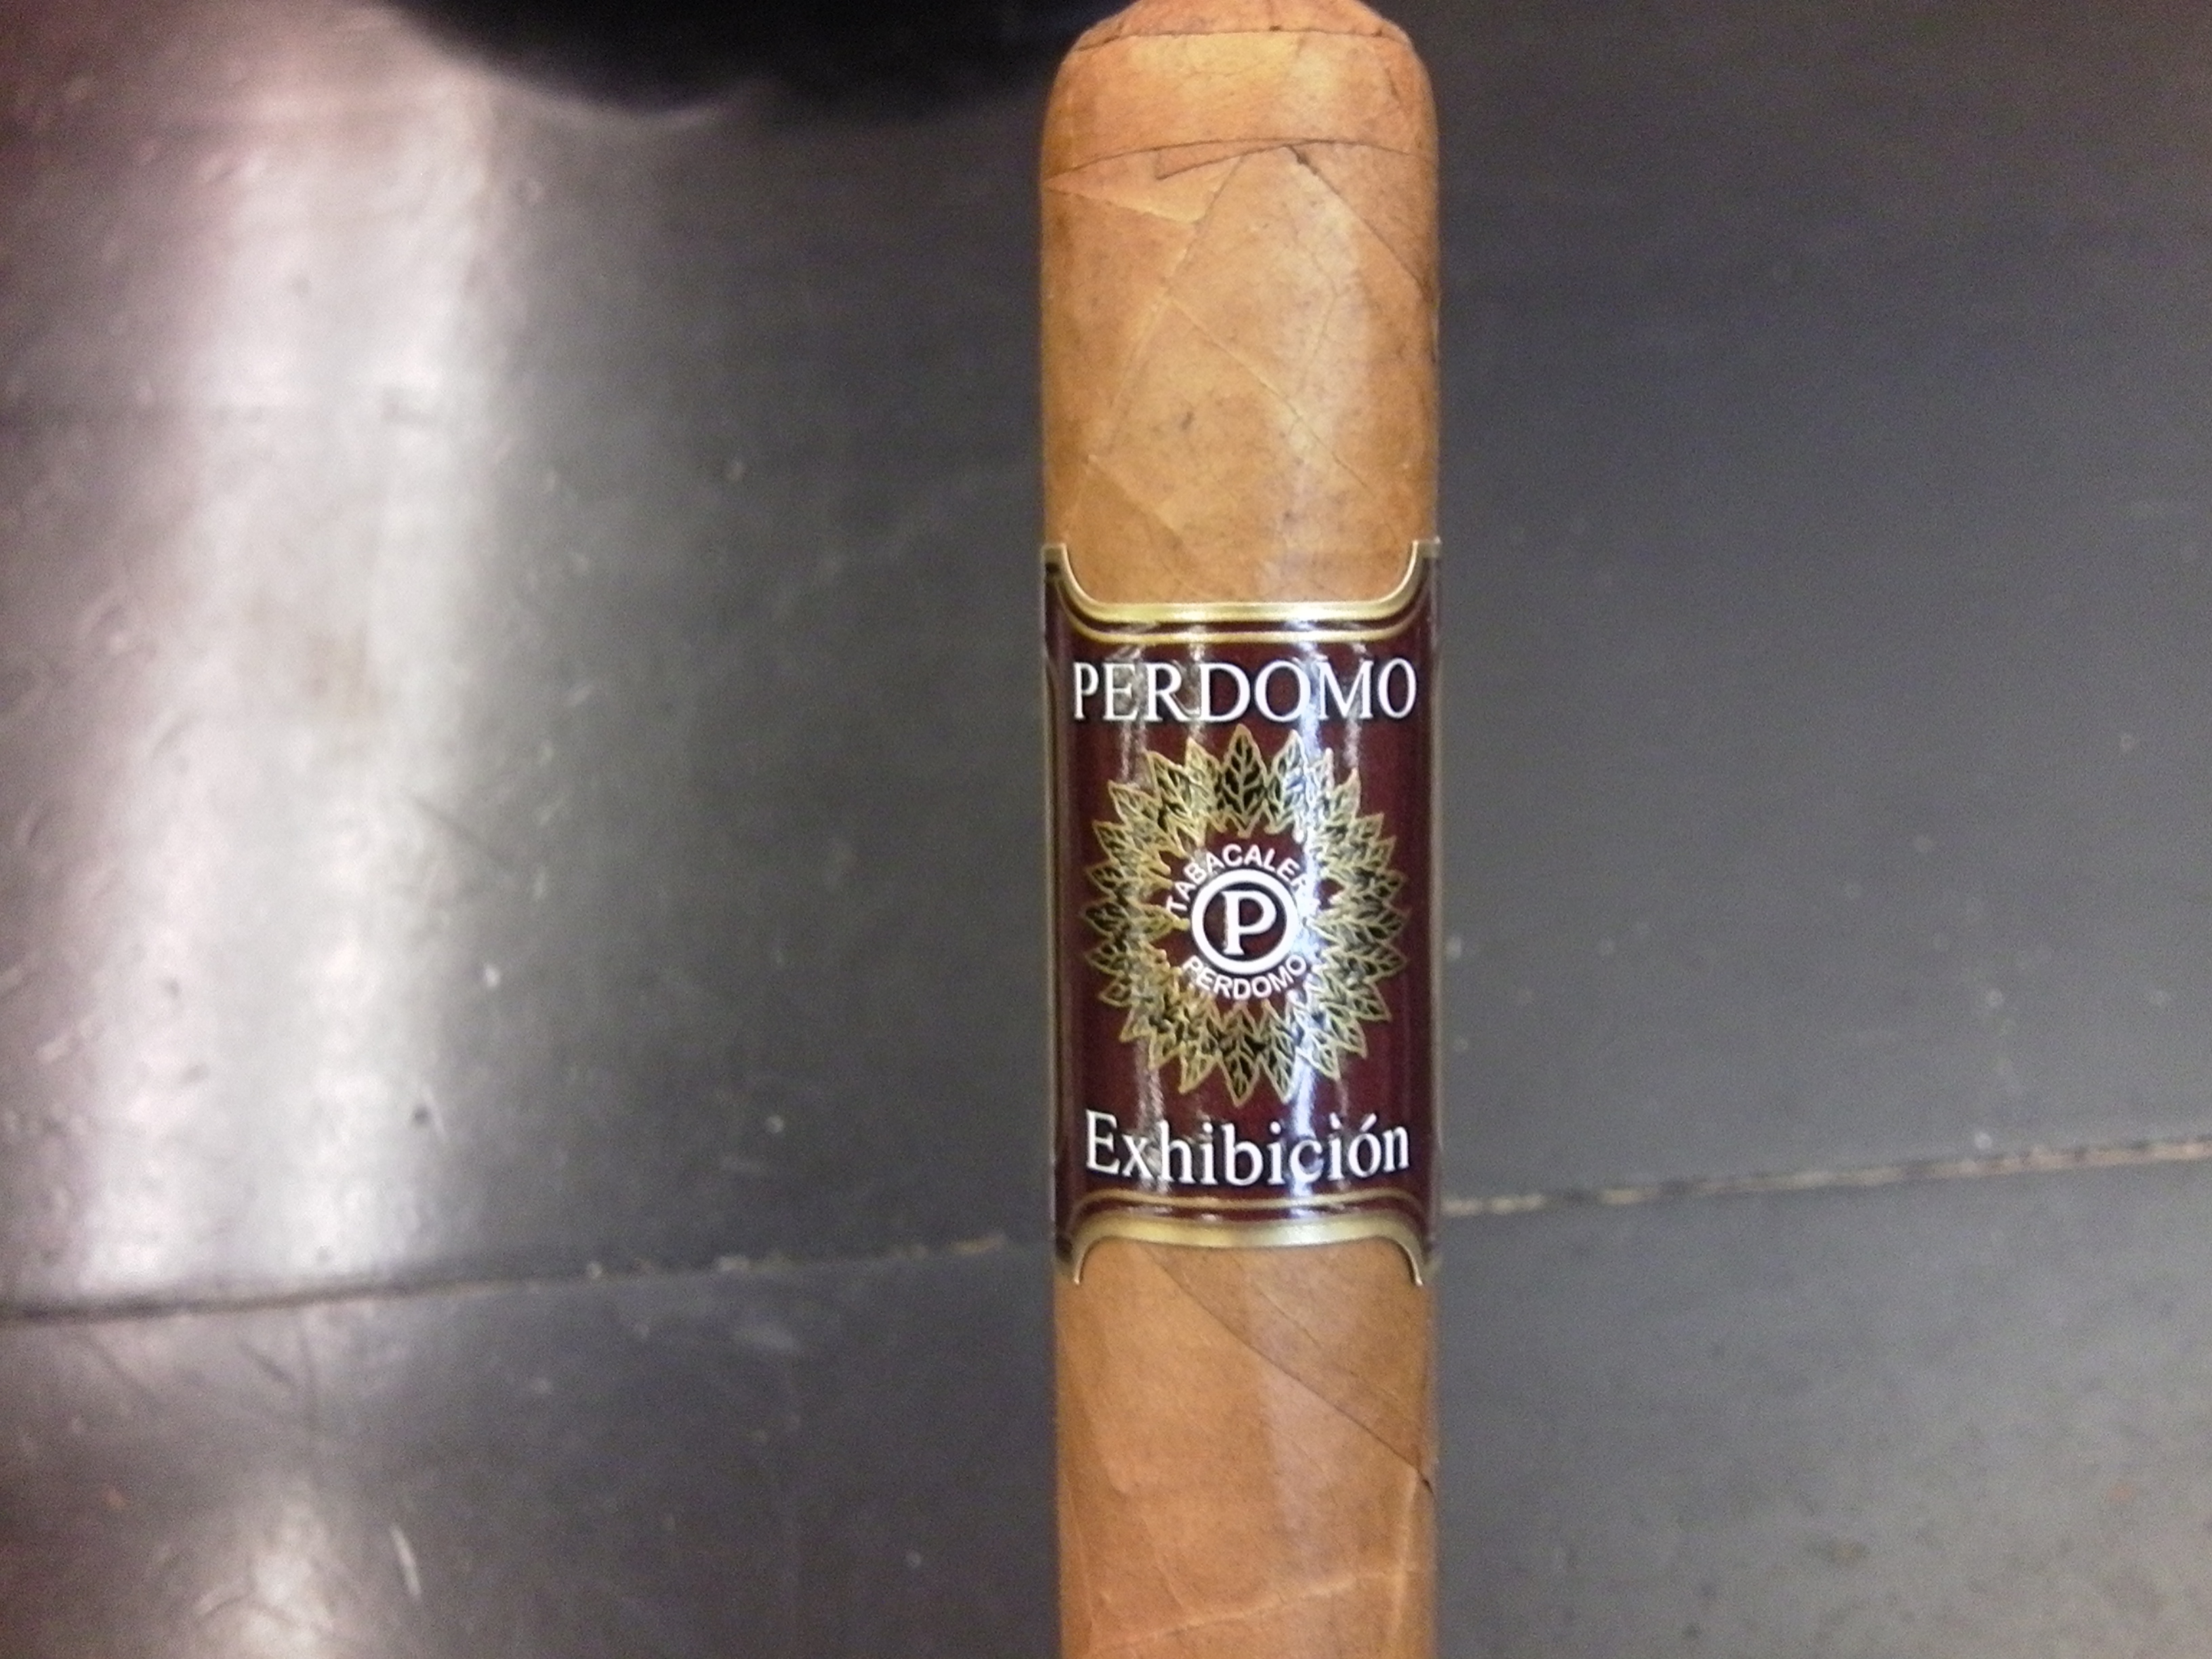 Perdomo Exhibición Sun Grown – Cigar Review